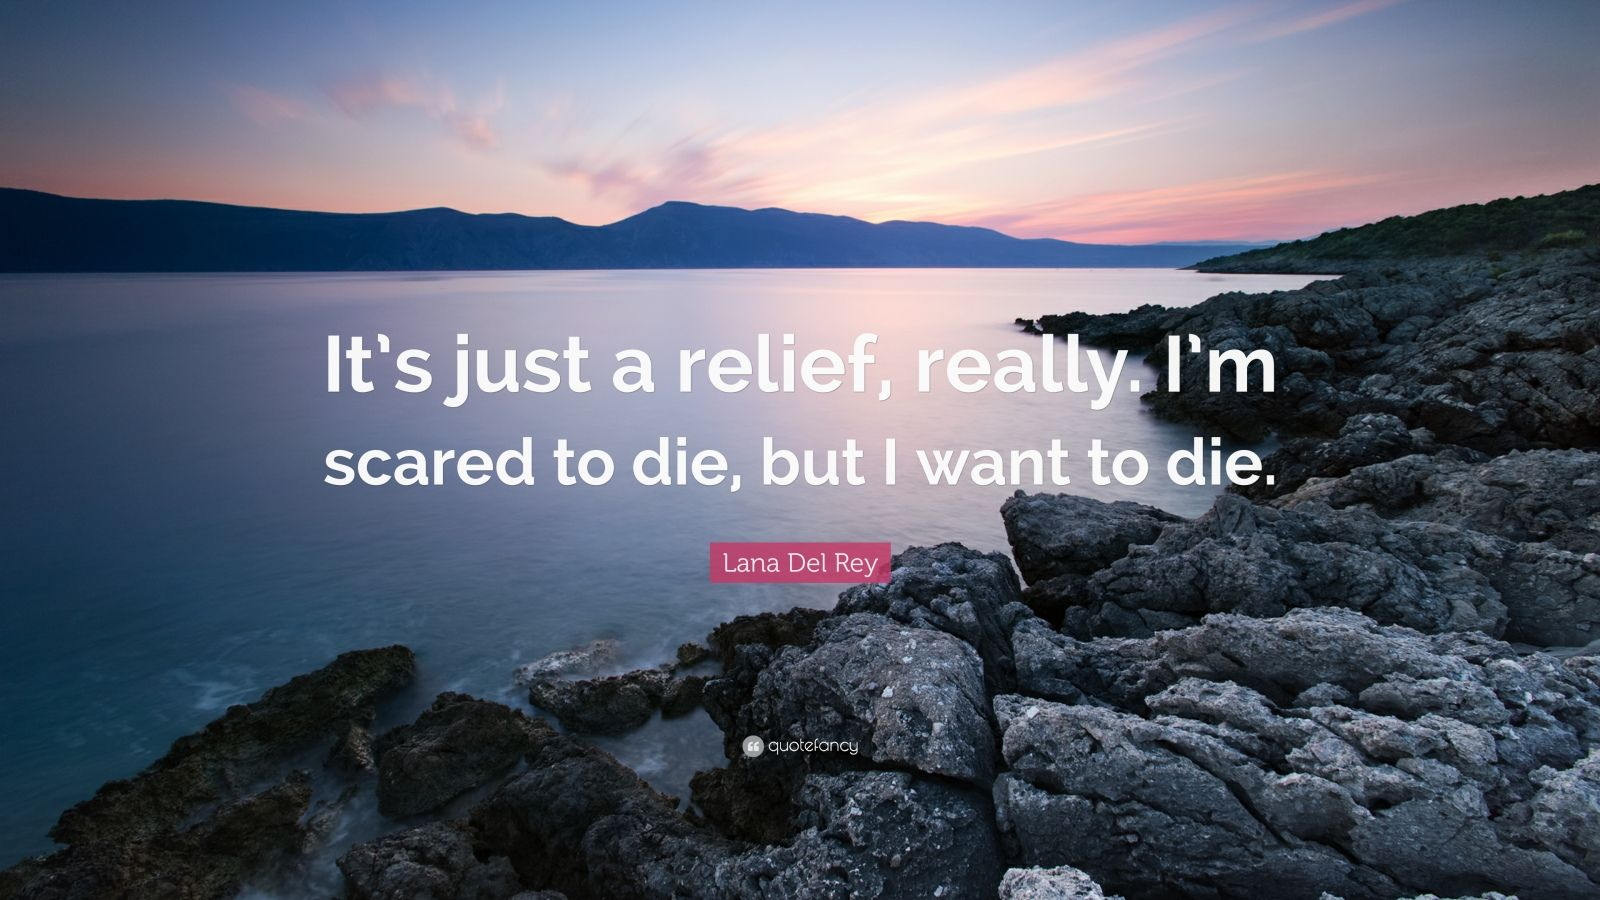 """Lana Del Rey Quote: """"It's just a relief, really. I'm scared to die, but I want to die."""""""